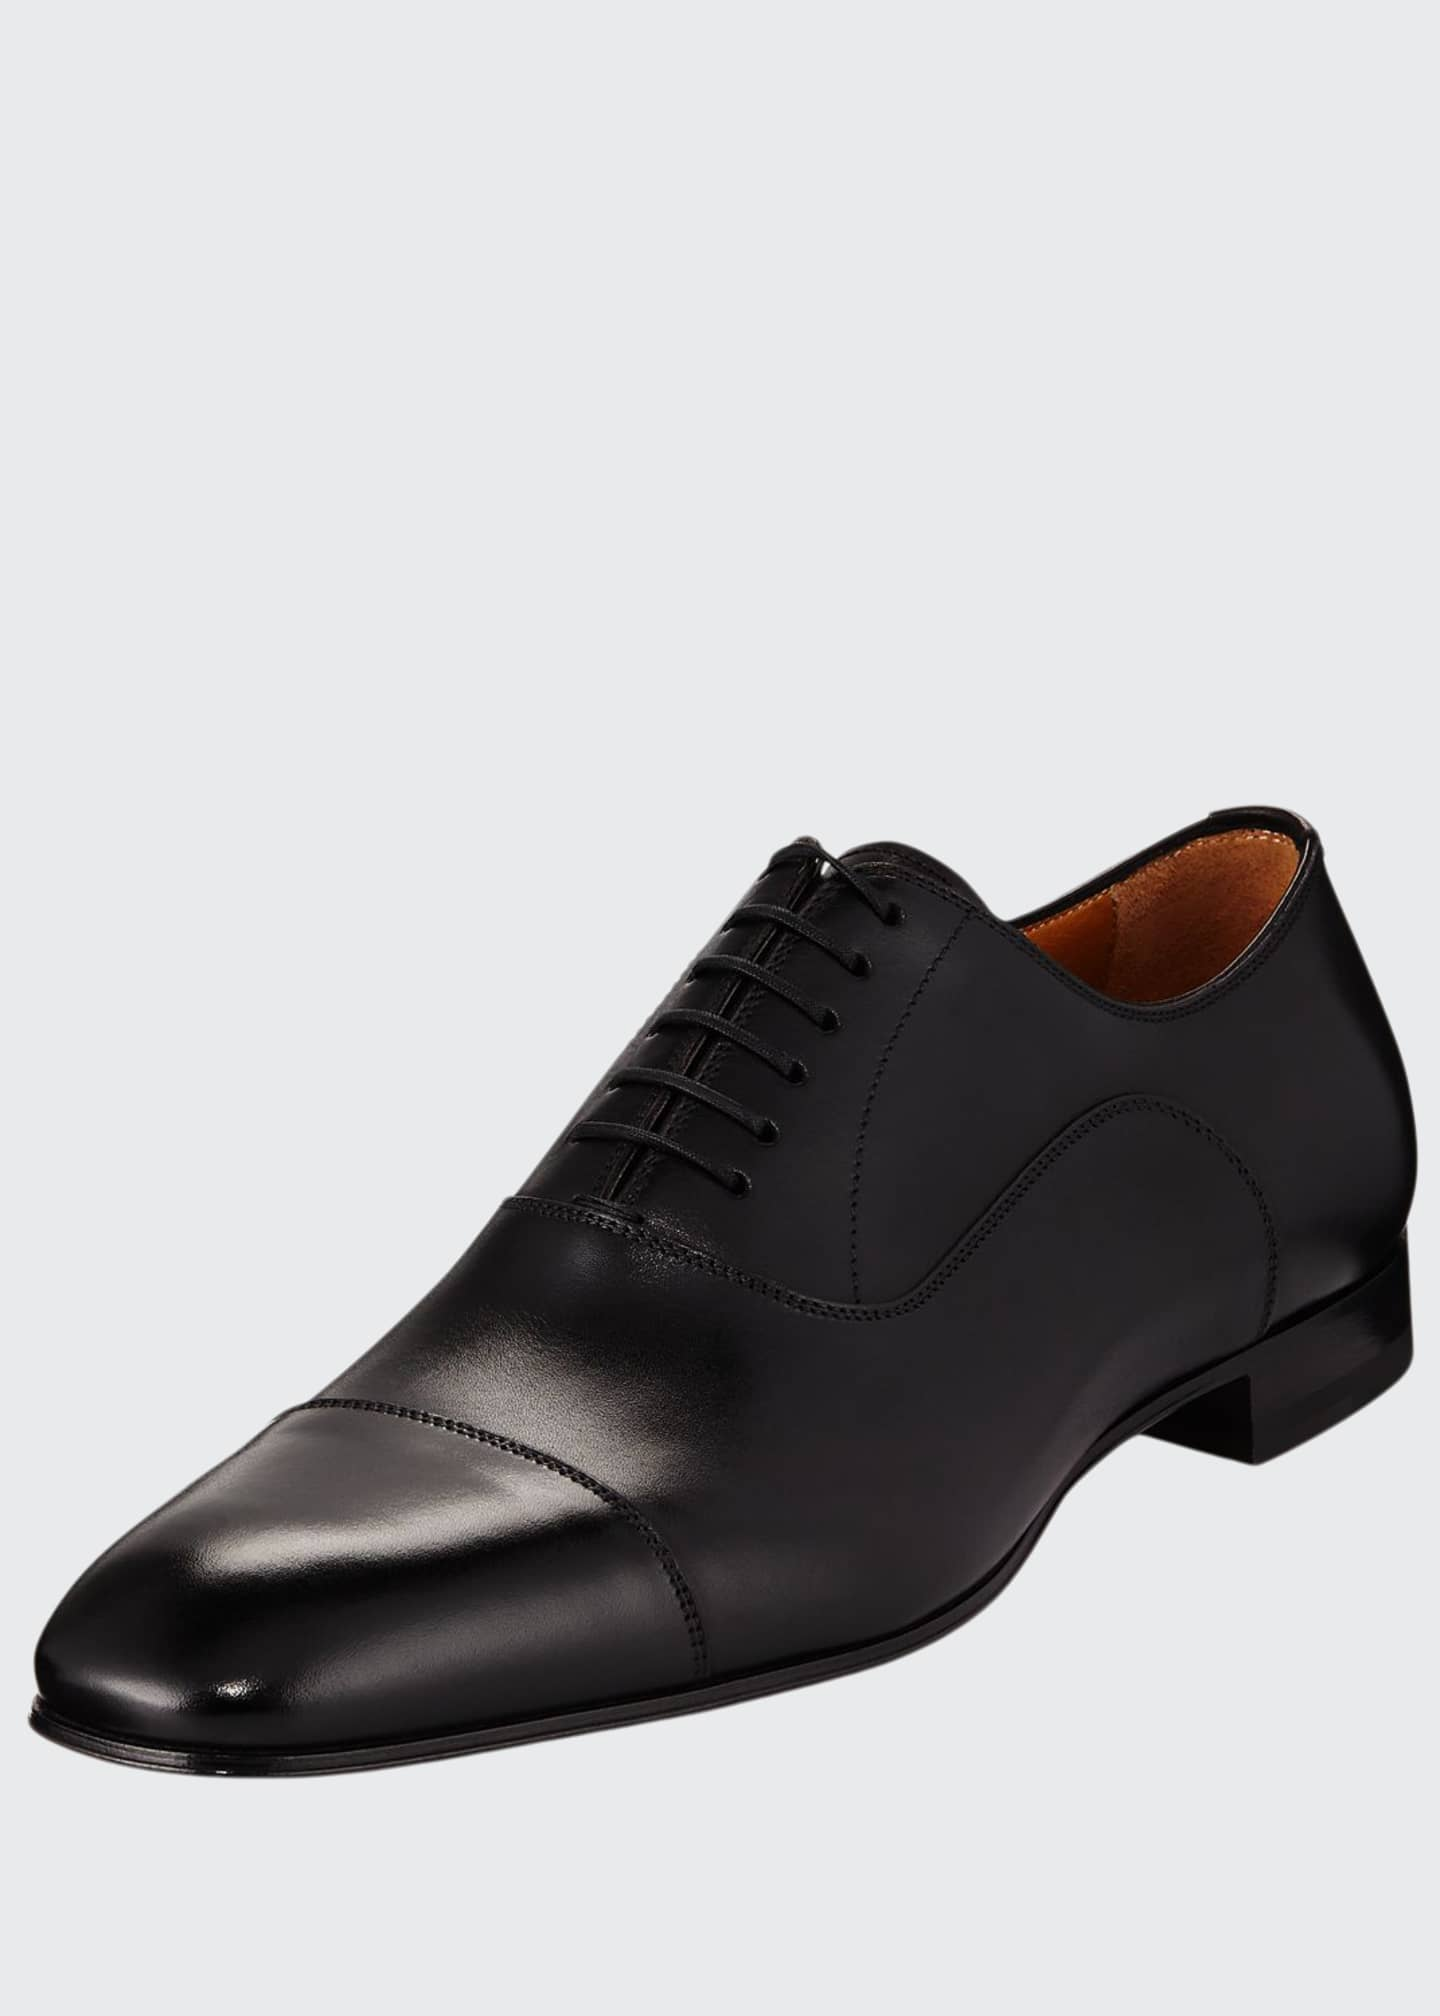 Image 1 of 3: Greggo Men's Lace-Up Leather Dress Shoes